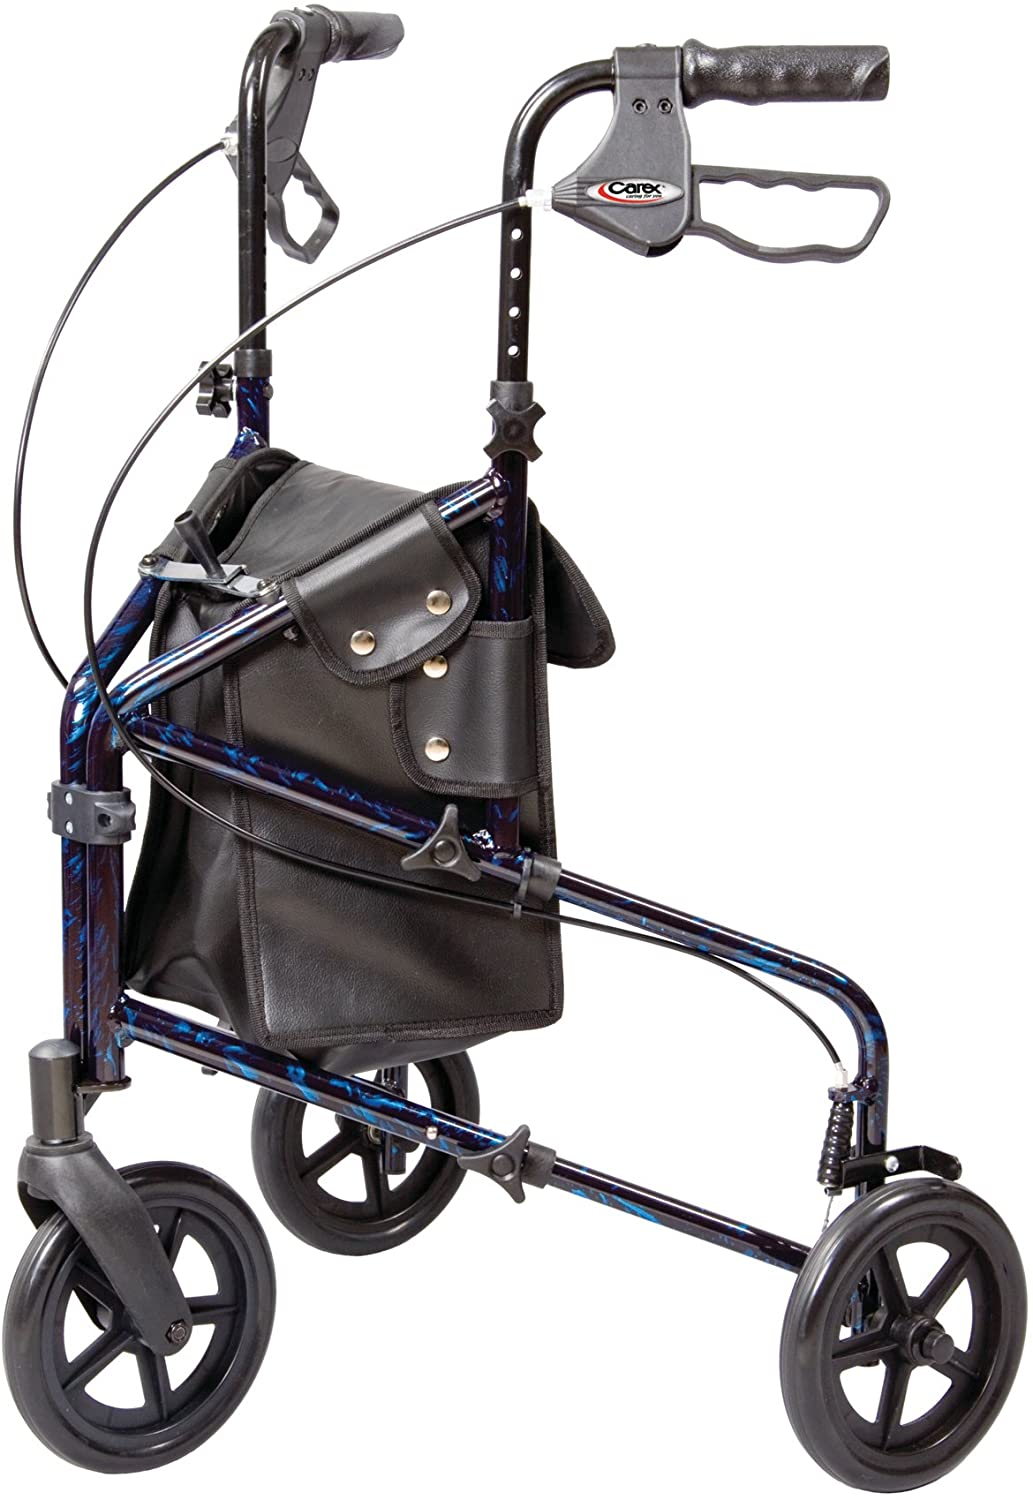 Carex 3 Wheel Walker for Seniors, Foldable, Rollator Walker with Three Wheels, Height Adjustable Handles